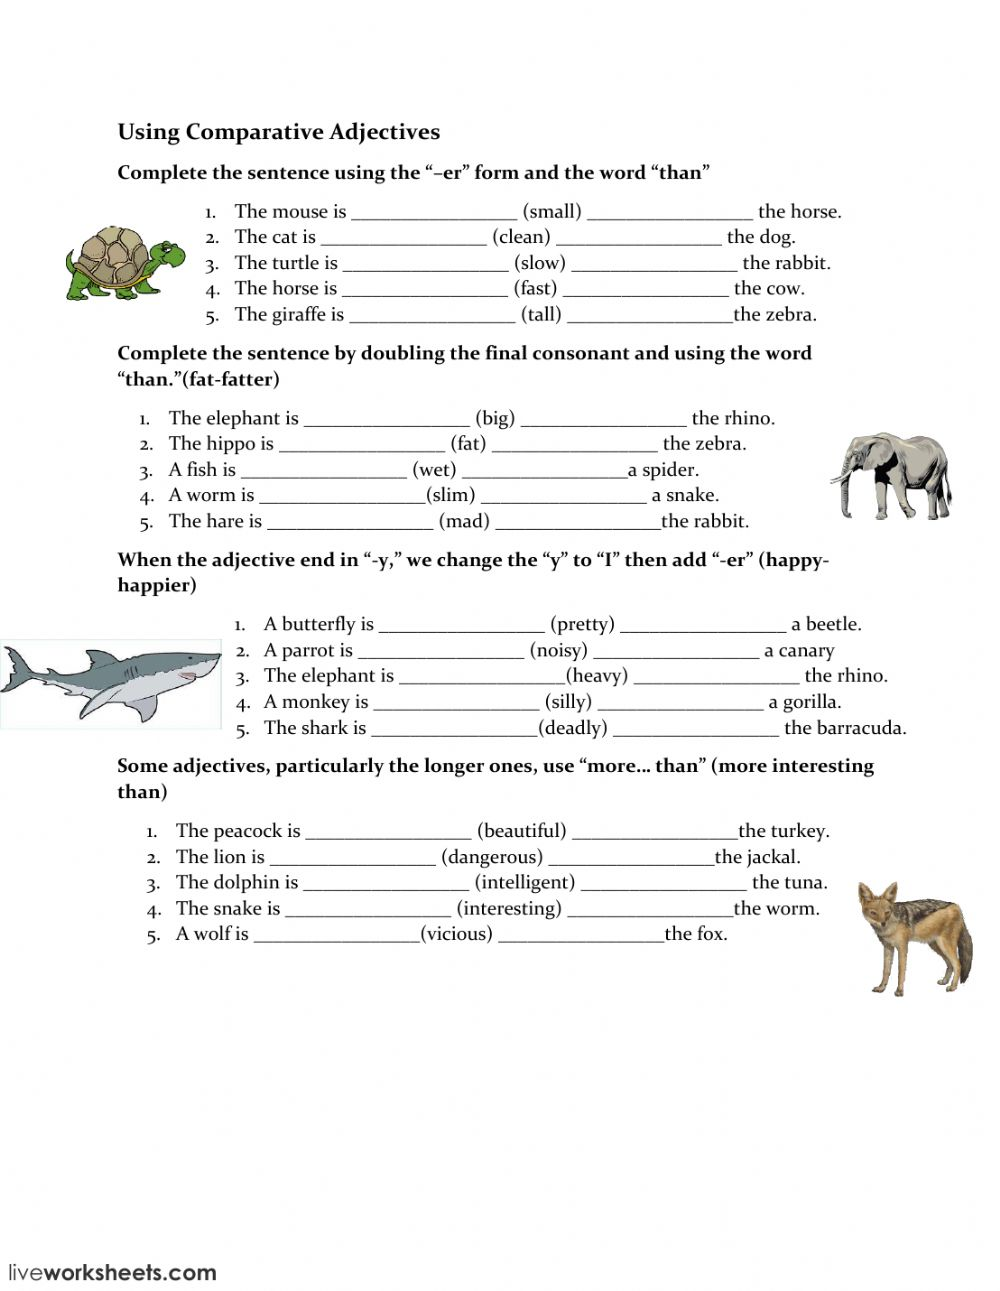 worksheet Worksheets On Comparative Adjectives using comparative adjectives interactive worksheet text